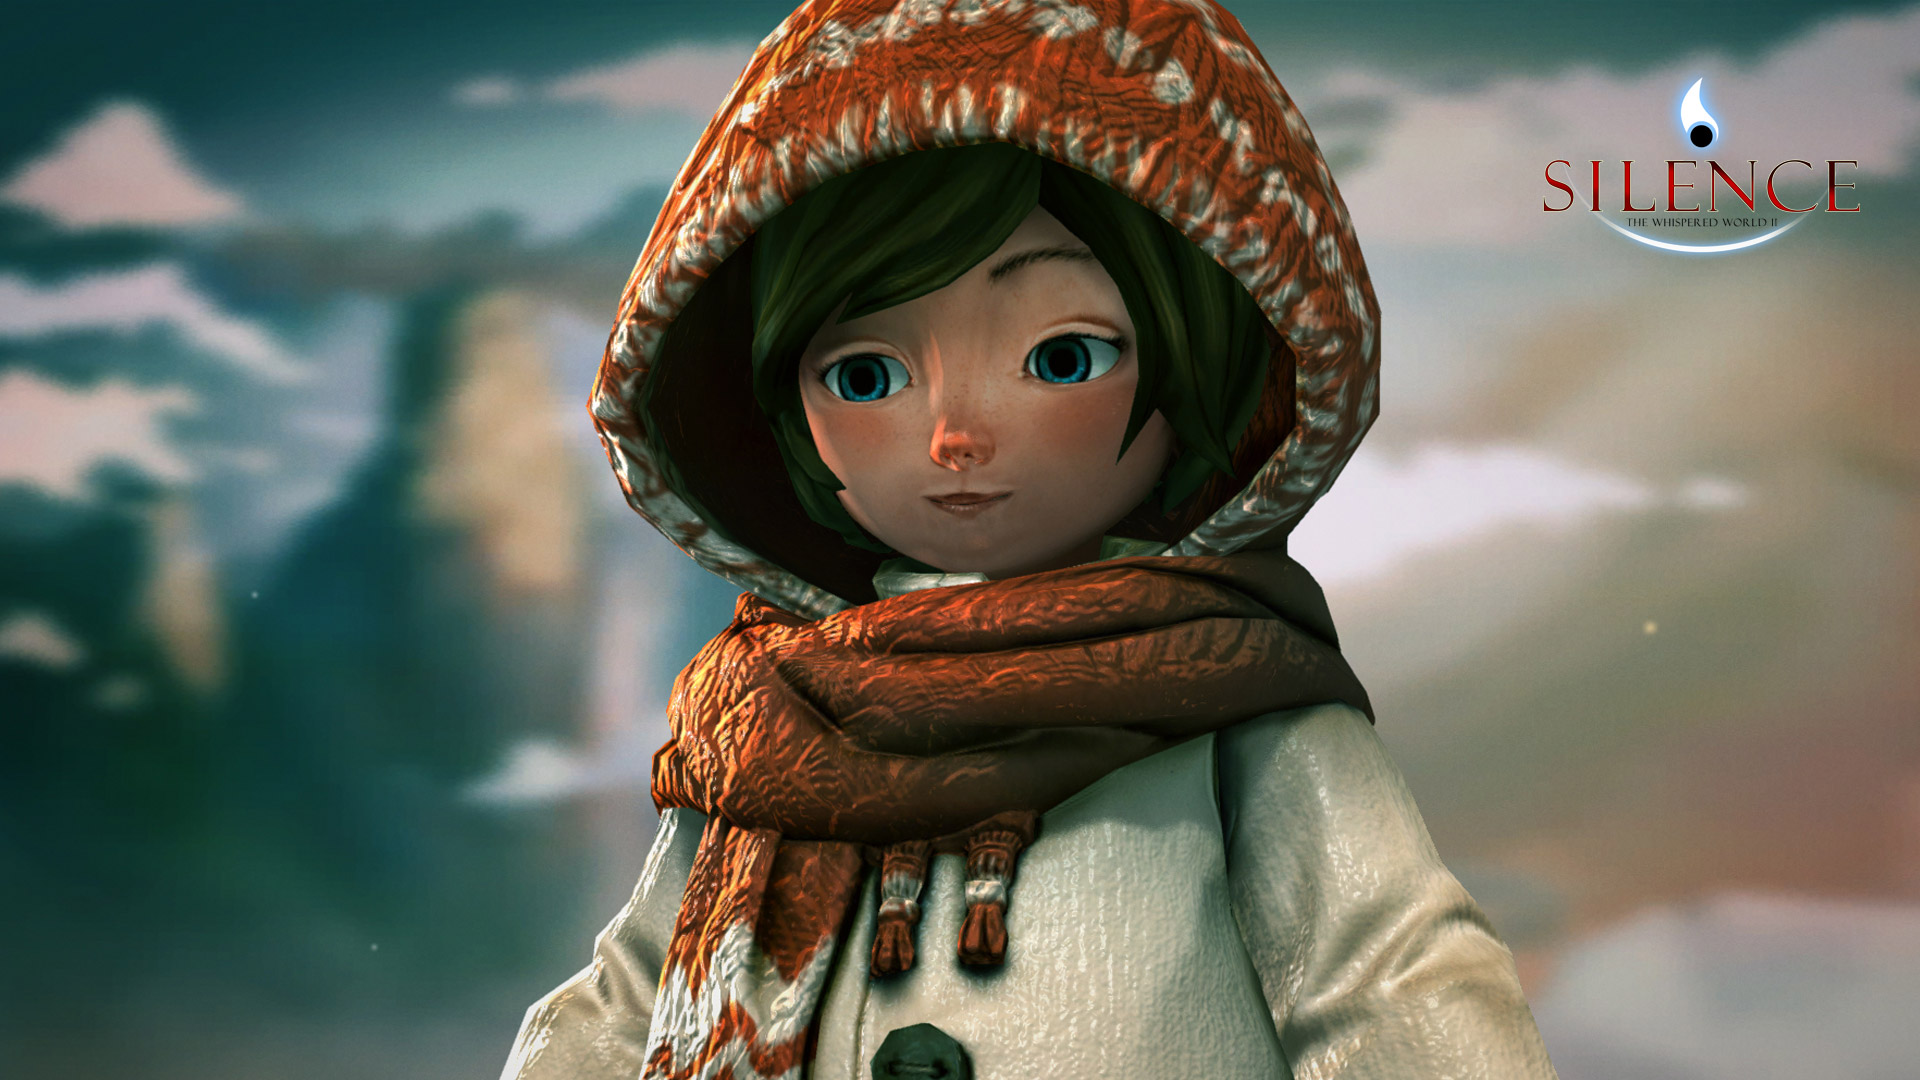 Free Silence: The Whispered World 2 Wallpaper in 1920x1080